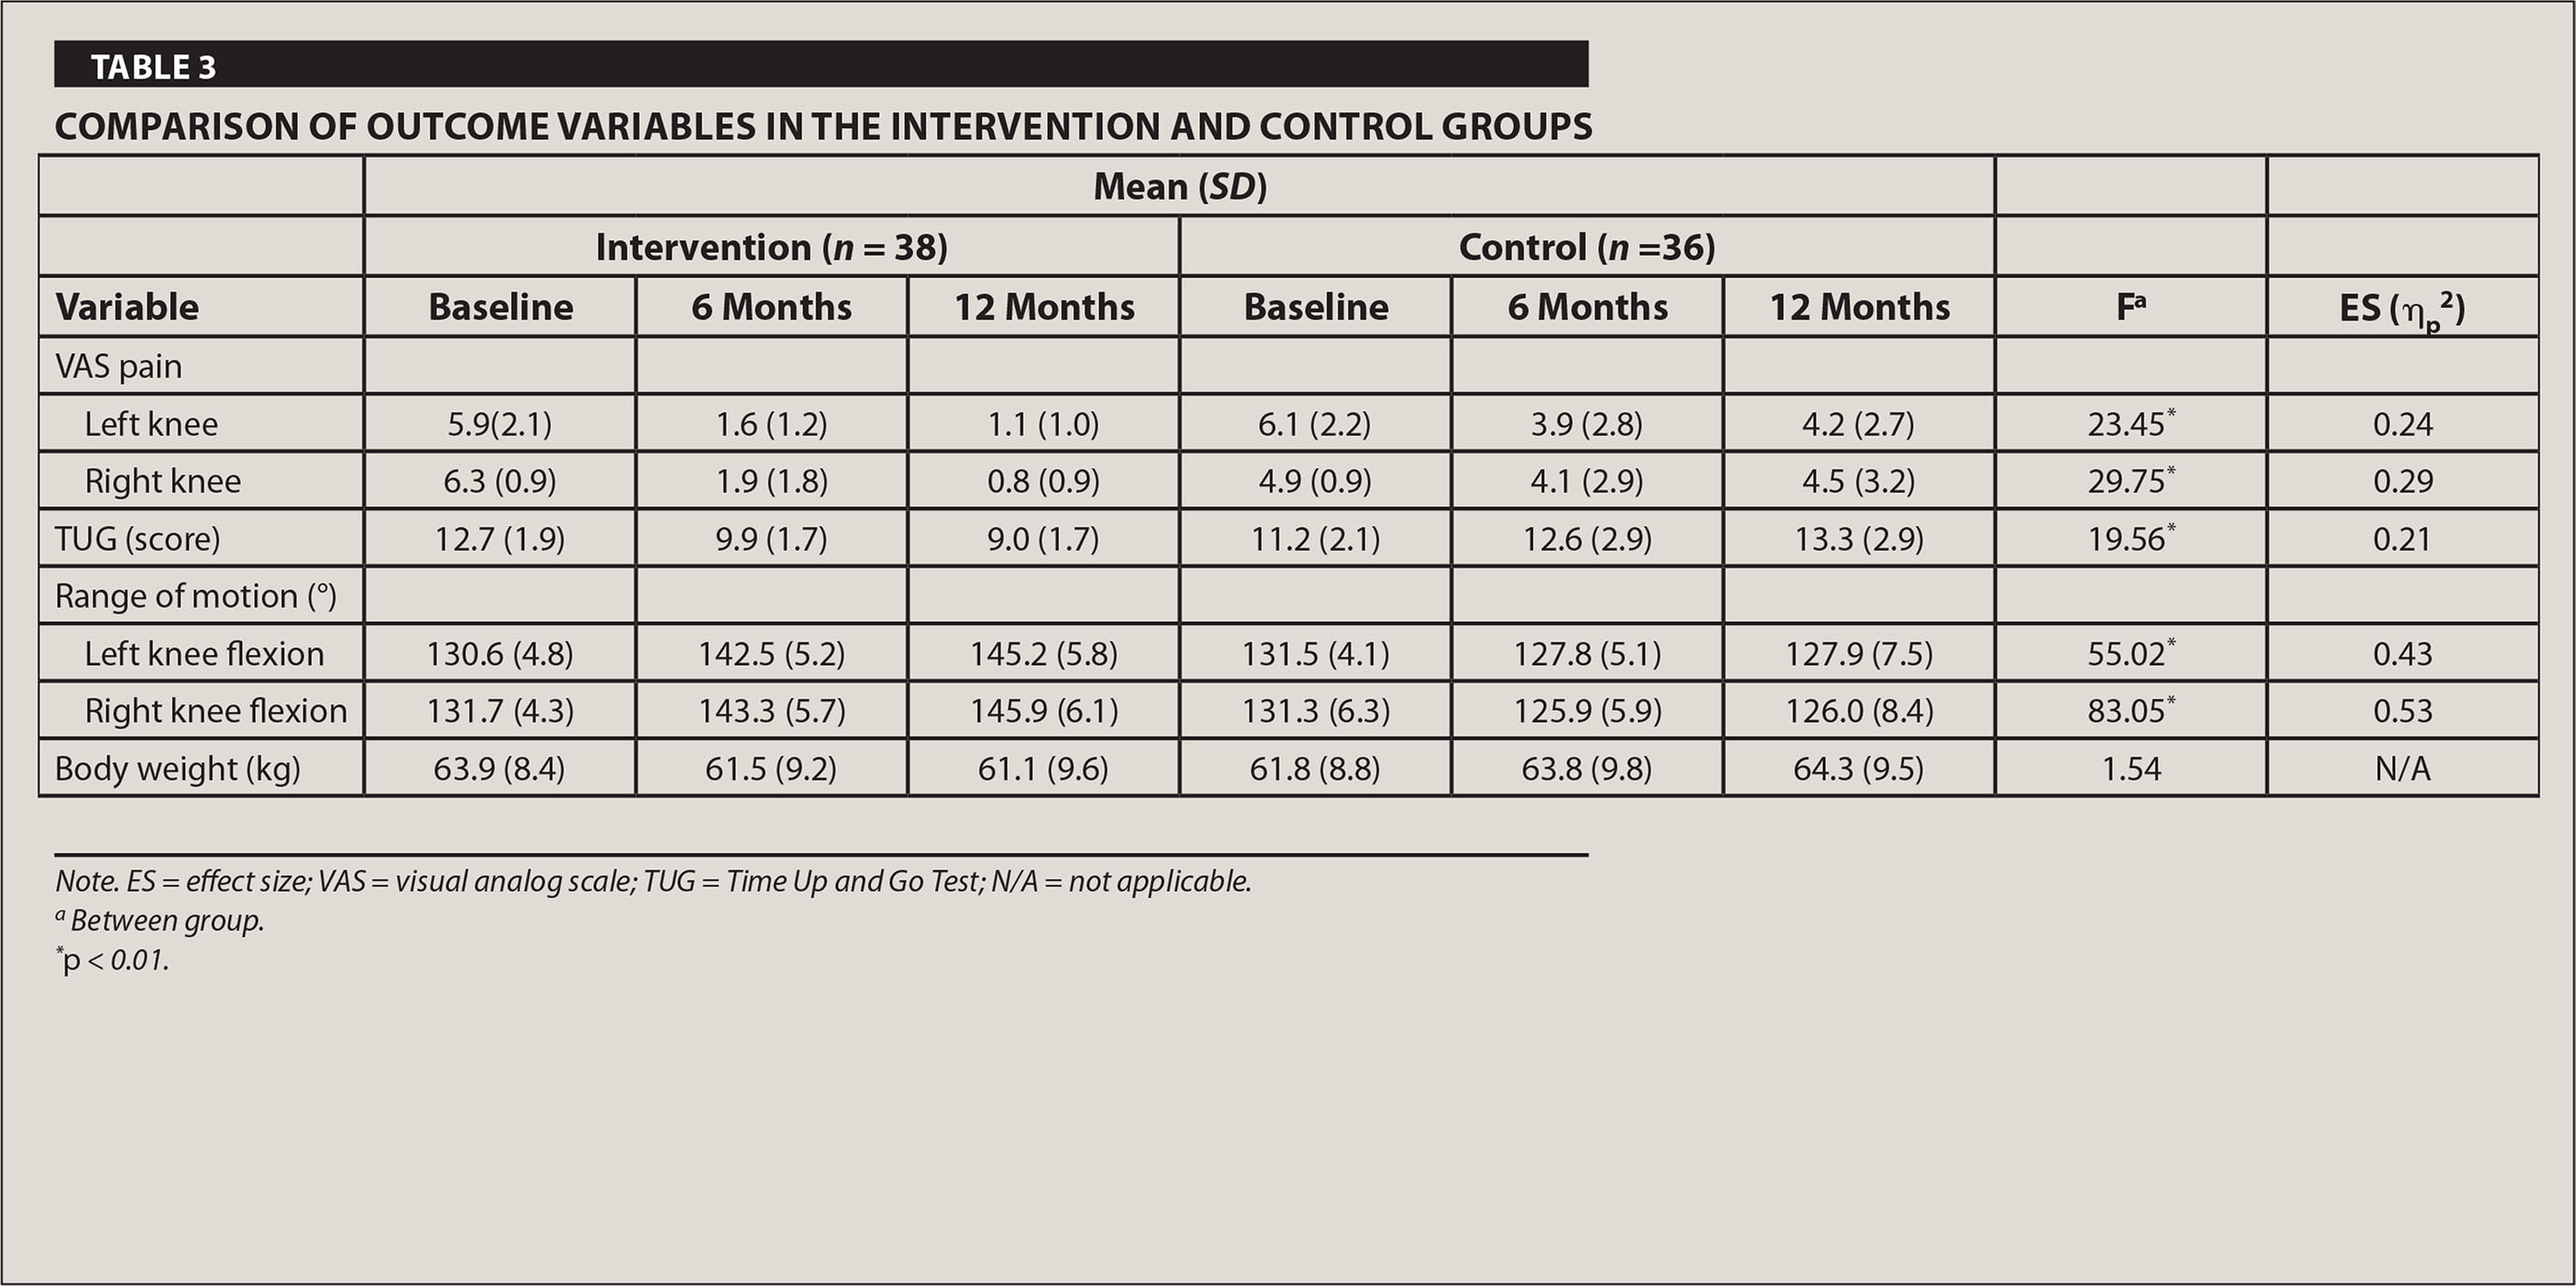 Comparison of Outcome Variables in the Intervention and Control Groups